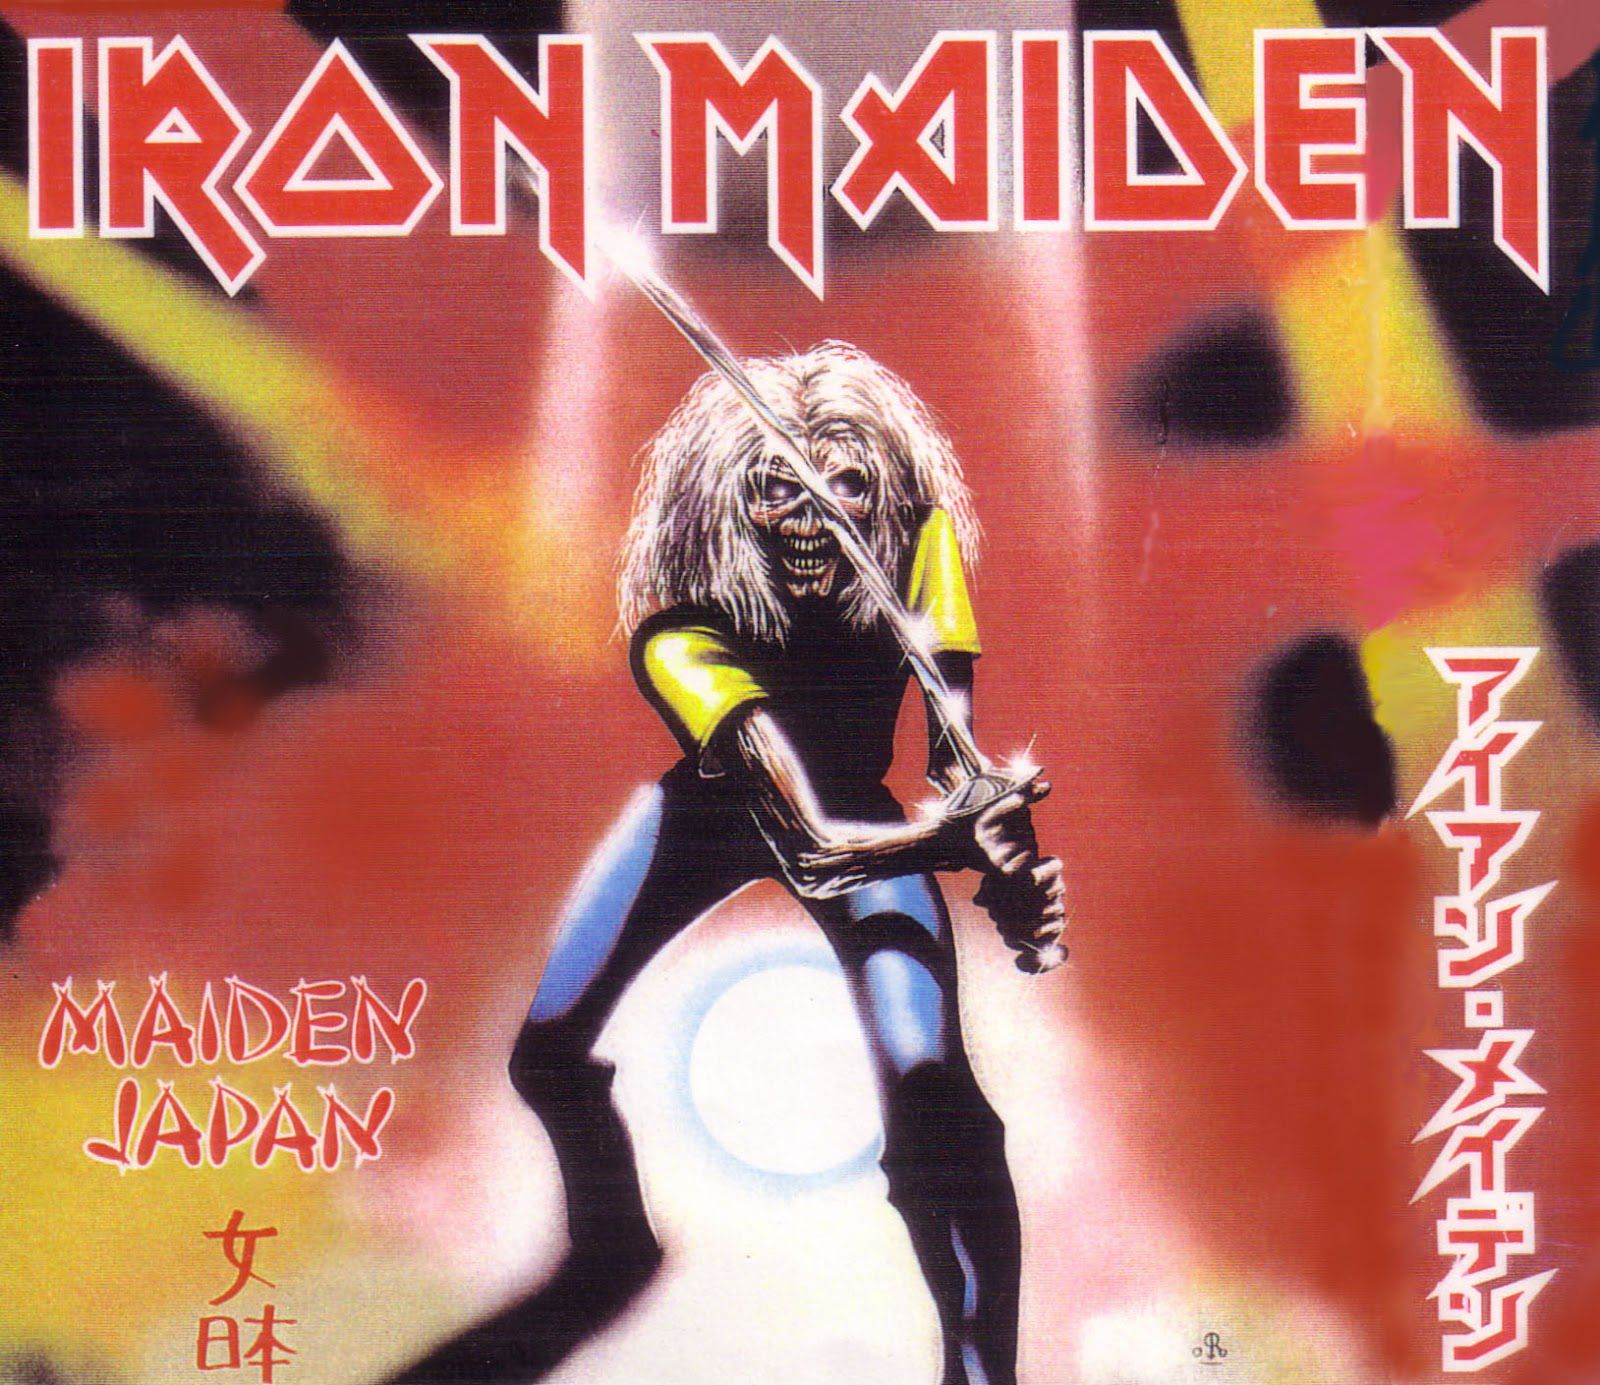 Wallpaper Iphone Iron Maiden: Iron Maiden Wallpaper And Background Image